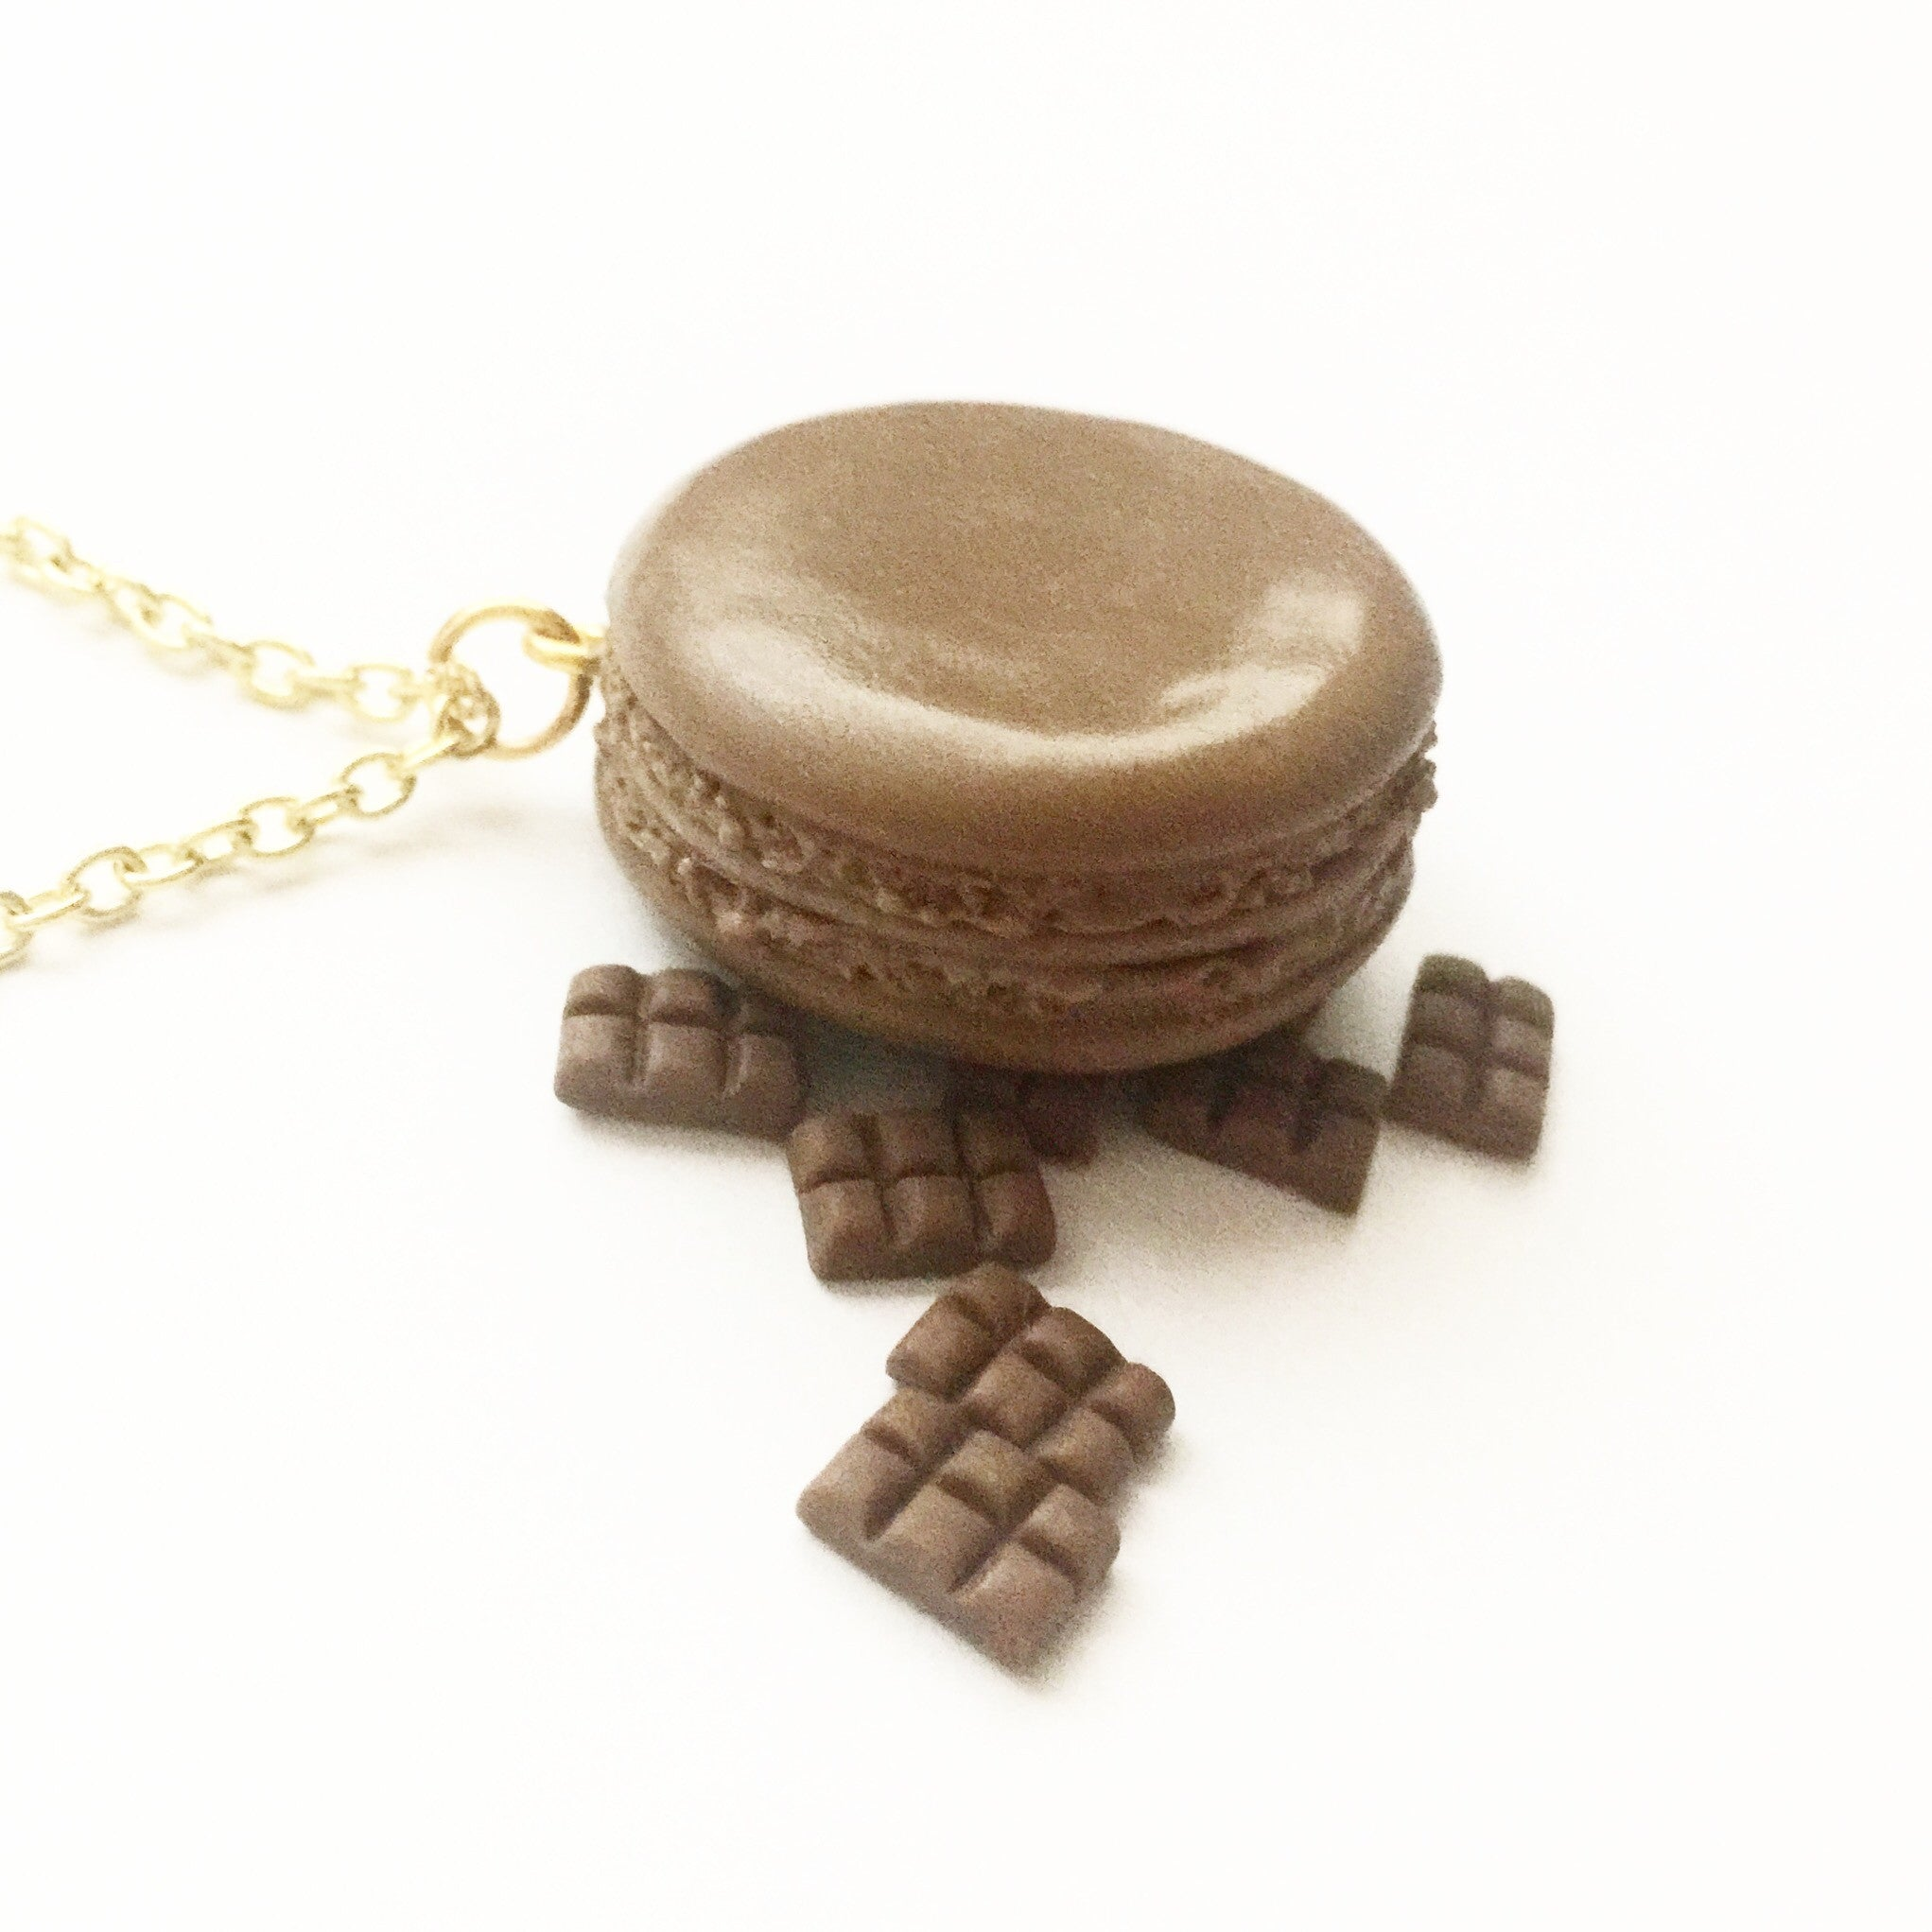 french macaron necklace - Jillicious charms and accessories - 6